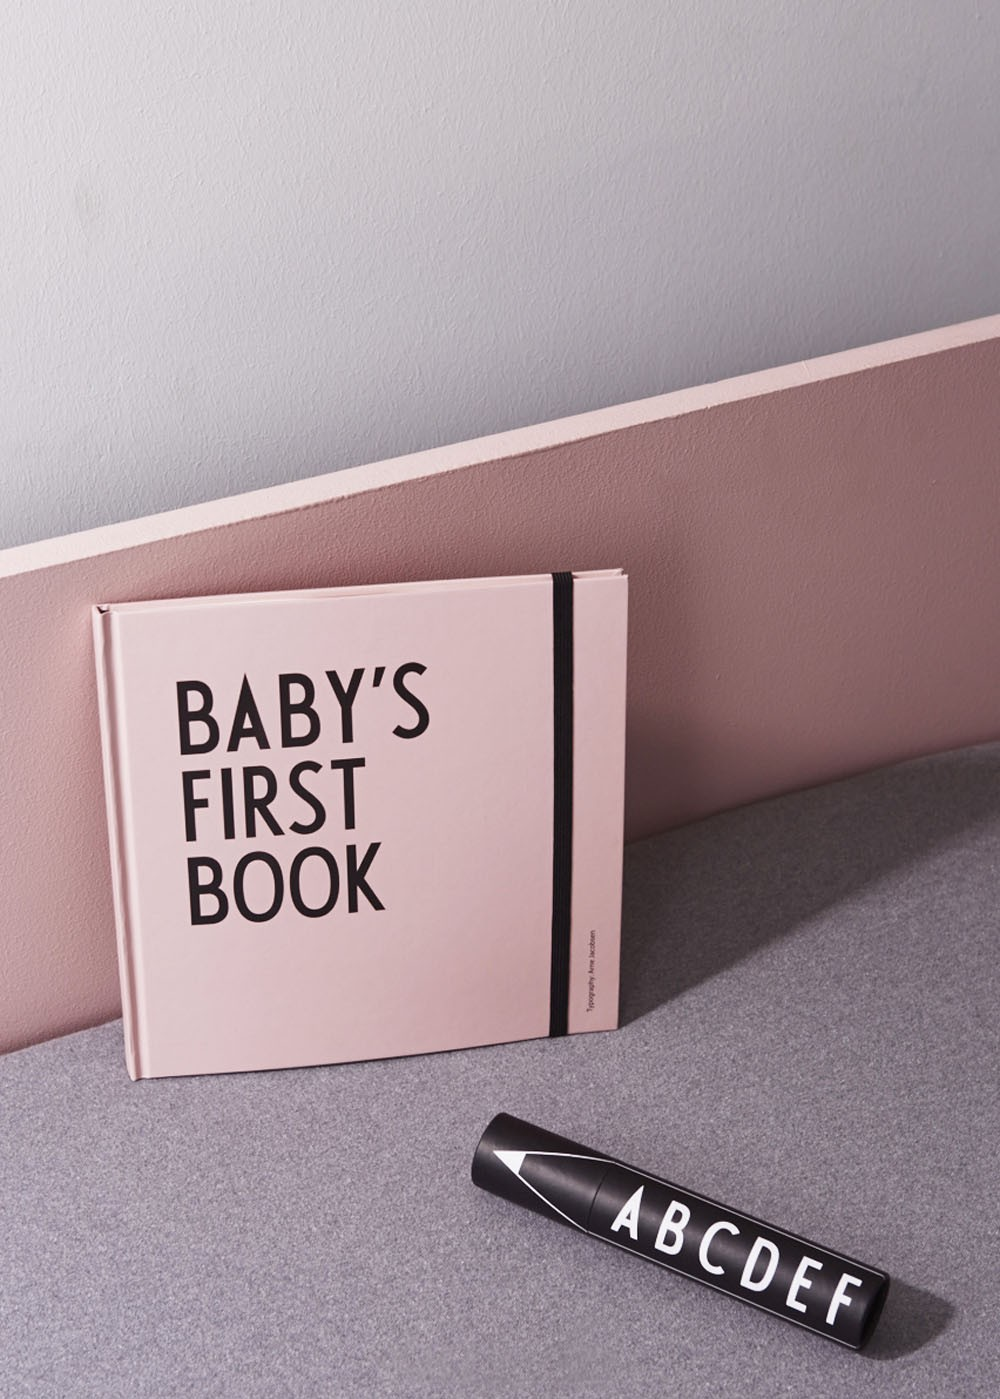 Design Letters Baby S First Book Pink 20202400 Pink Www.kidsdepartment.nl 32